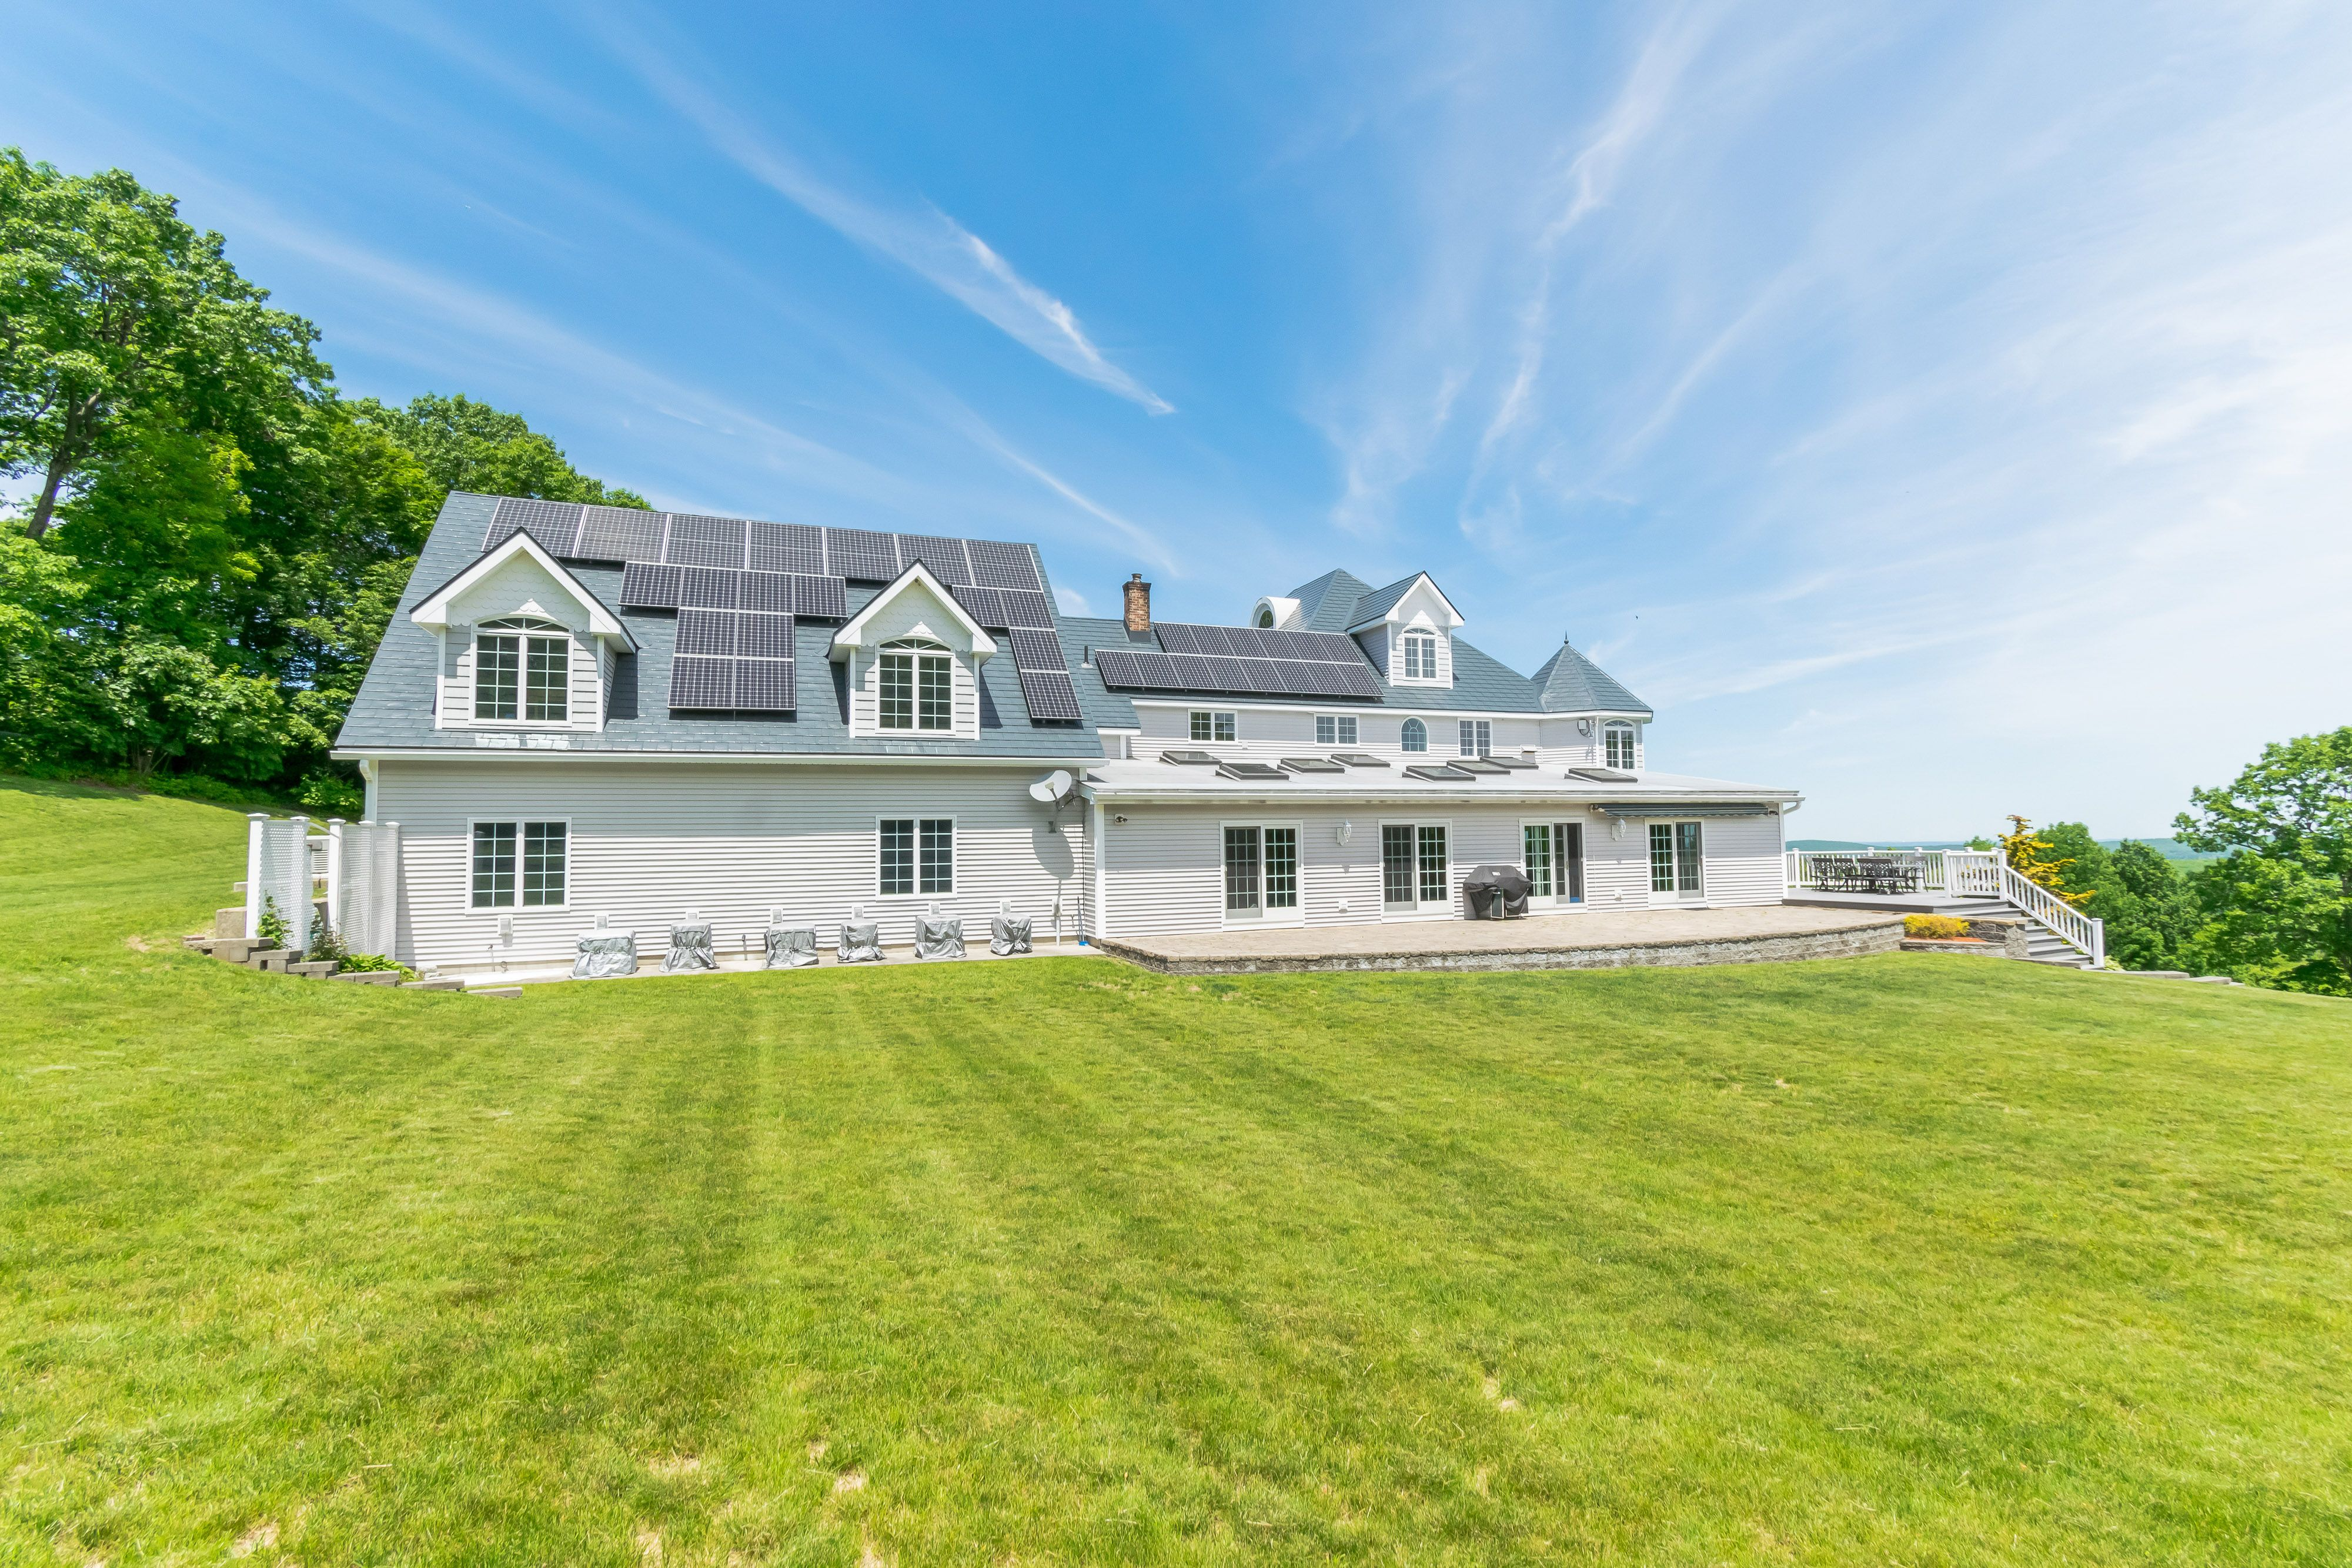 Princeton Ma Metal Roofing With Solar Panels Roofing Roof Roofing Systems